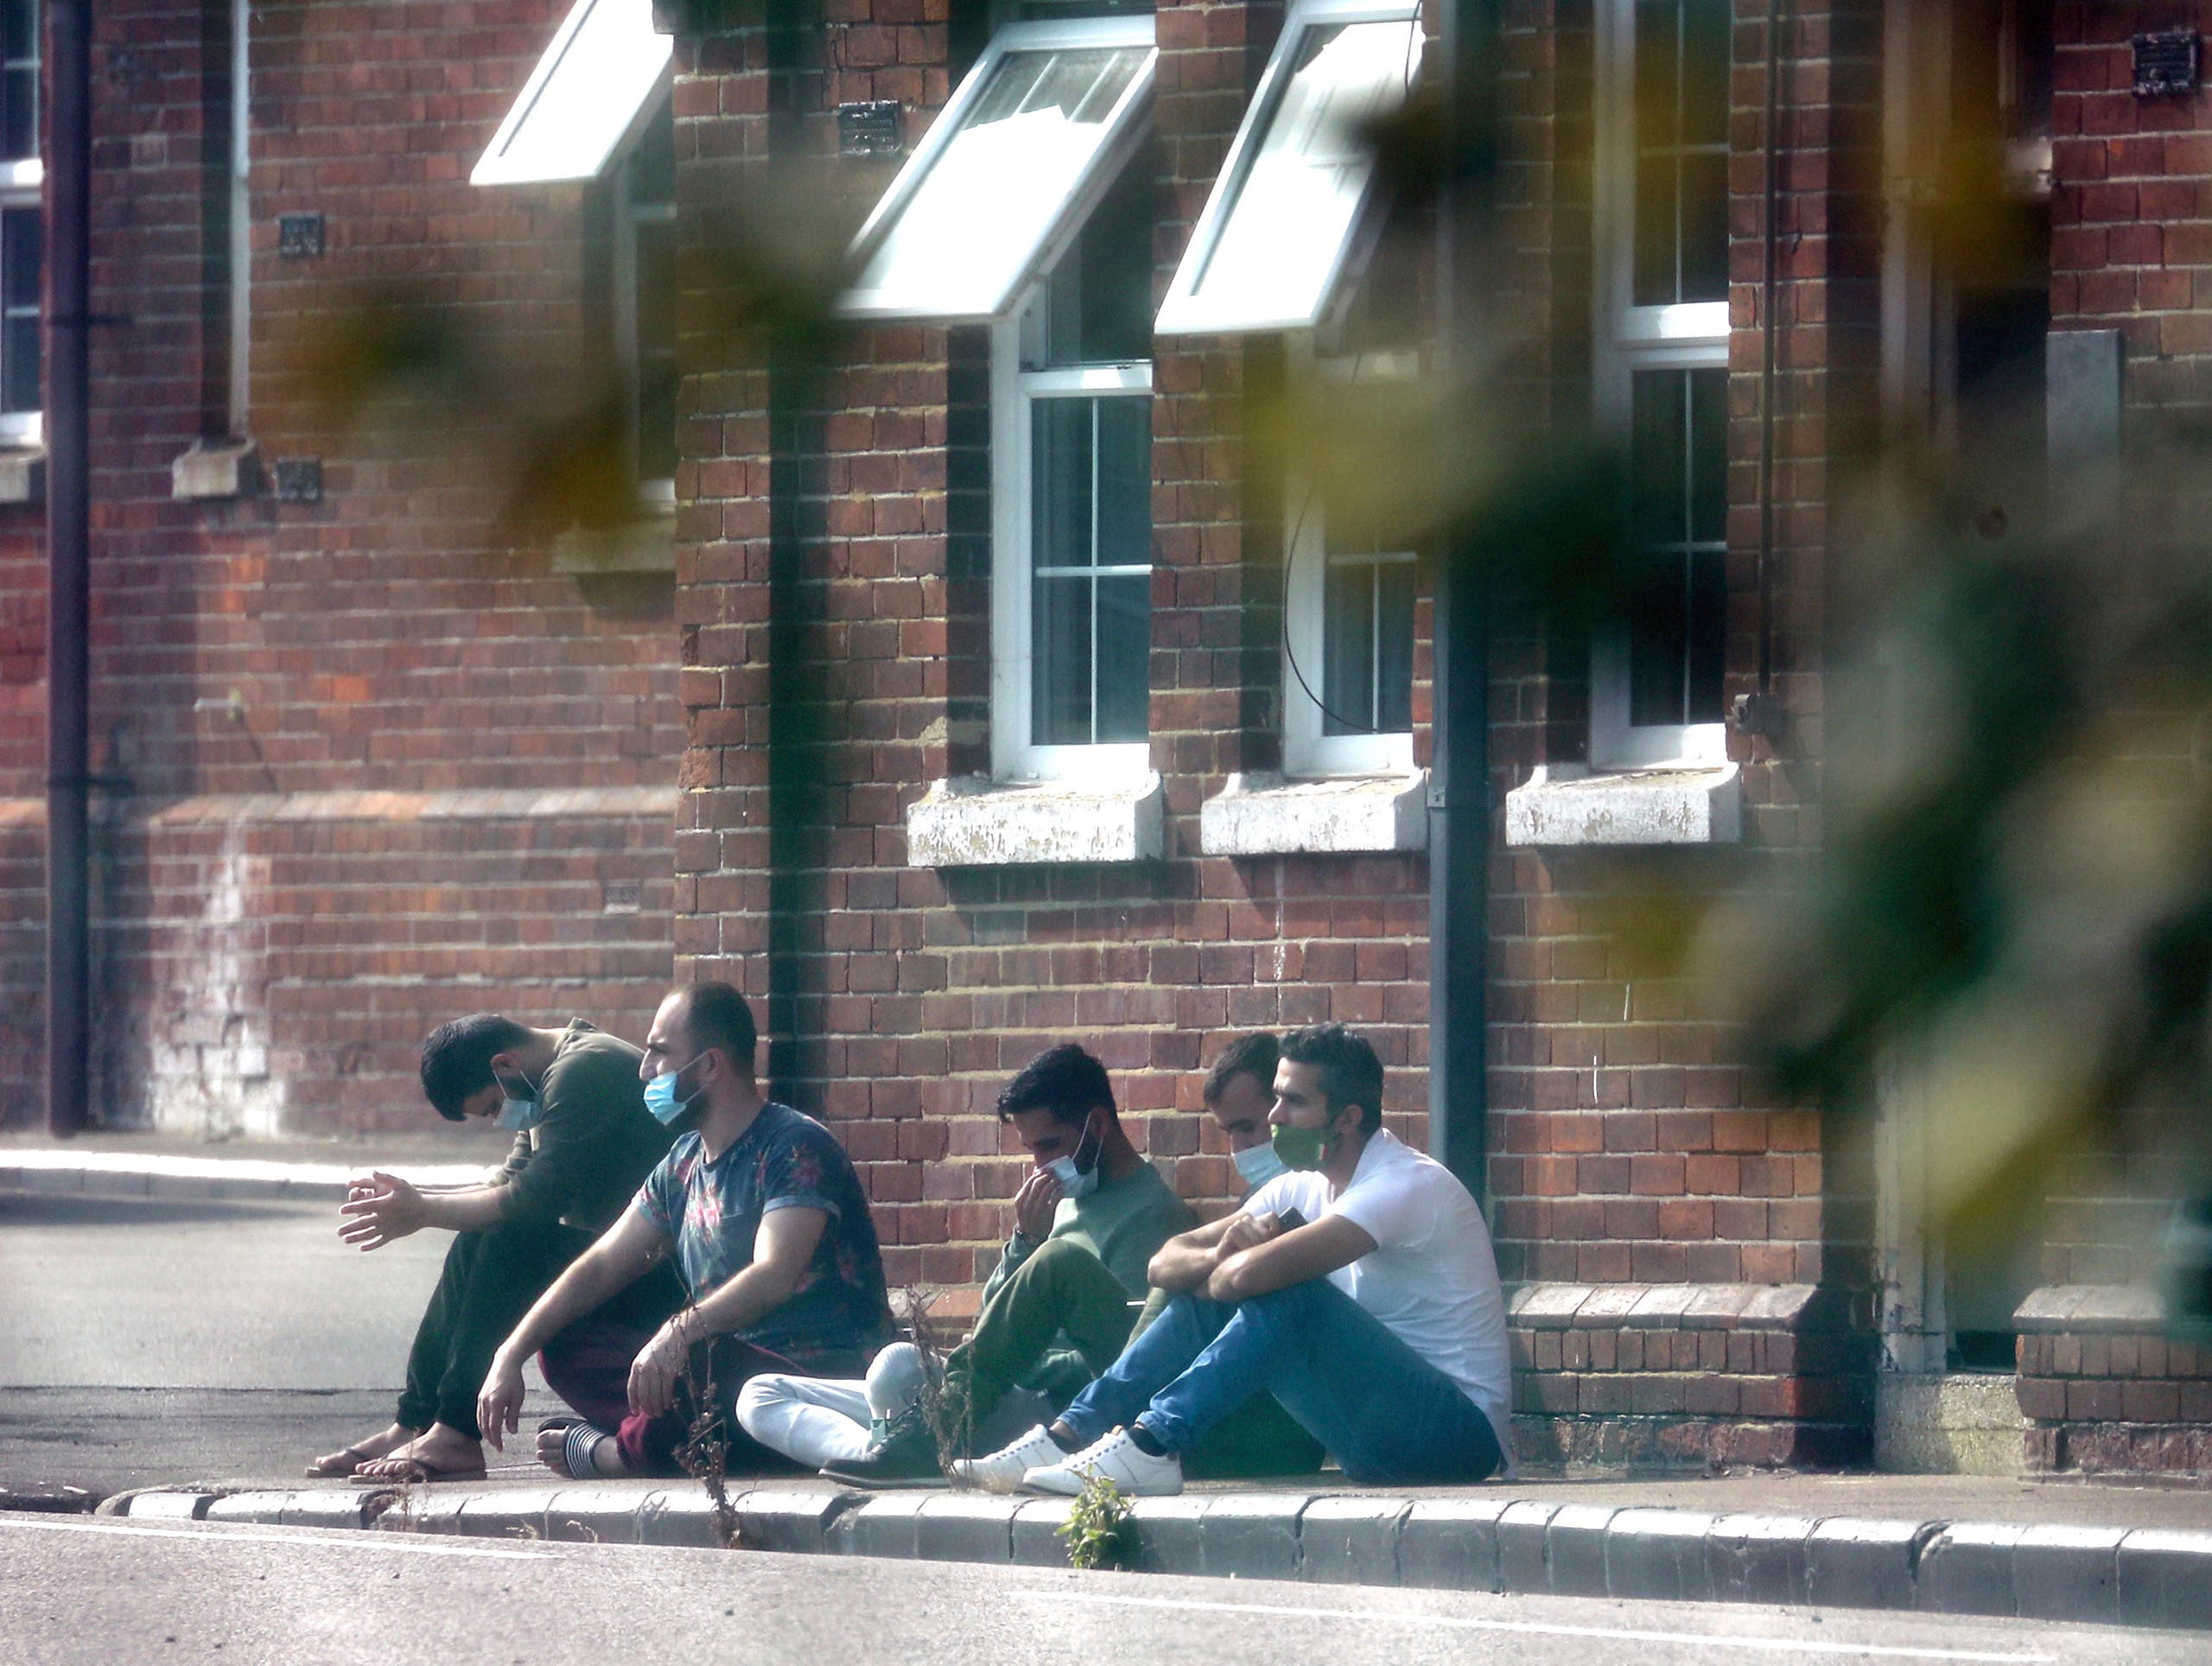 A group of men, thought to be migrants, sit outside in the sunshine after arriving on Monday, at Napier Barracks in Folkestone, Kent, England, Tuesday, Sept. 22, 2020. Migrants will be housed in the military barracks from this week while their asylum claims are processed. (Gareth Fuller/PA via AP)